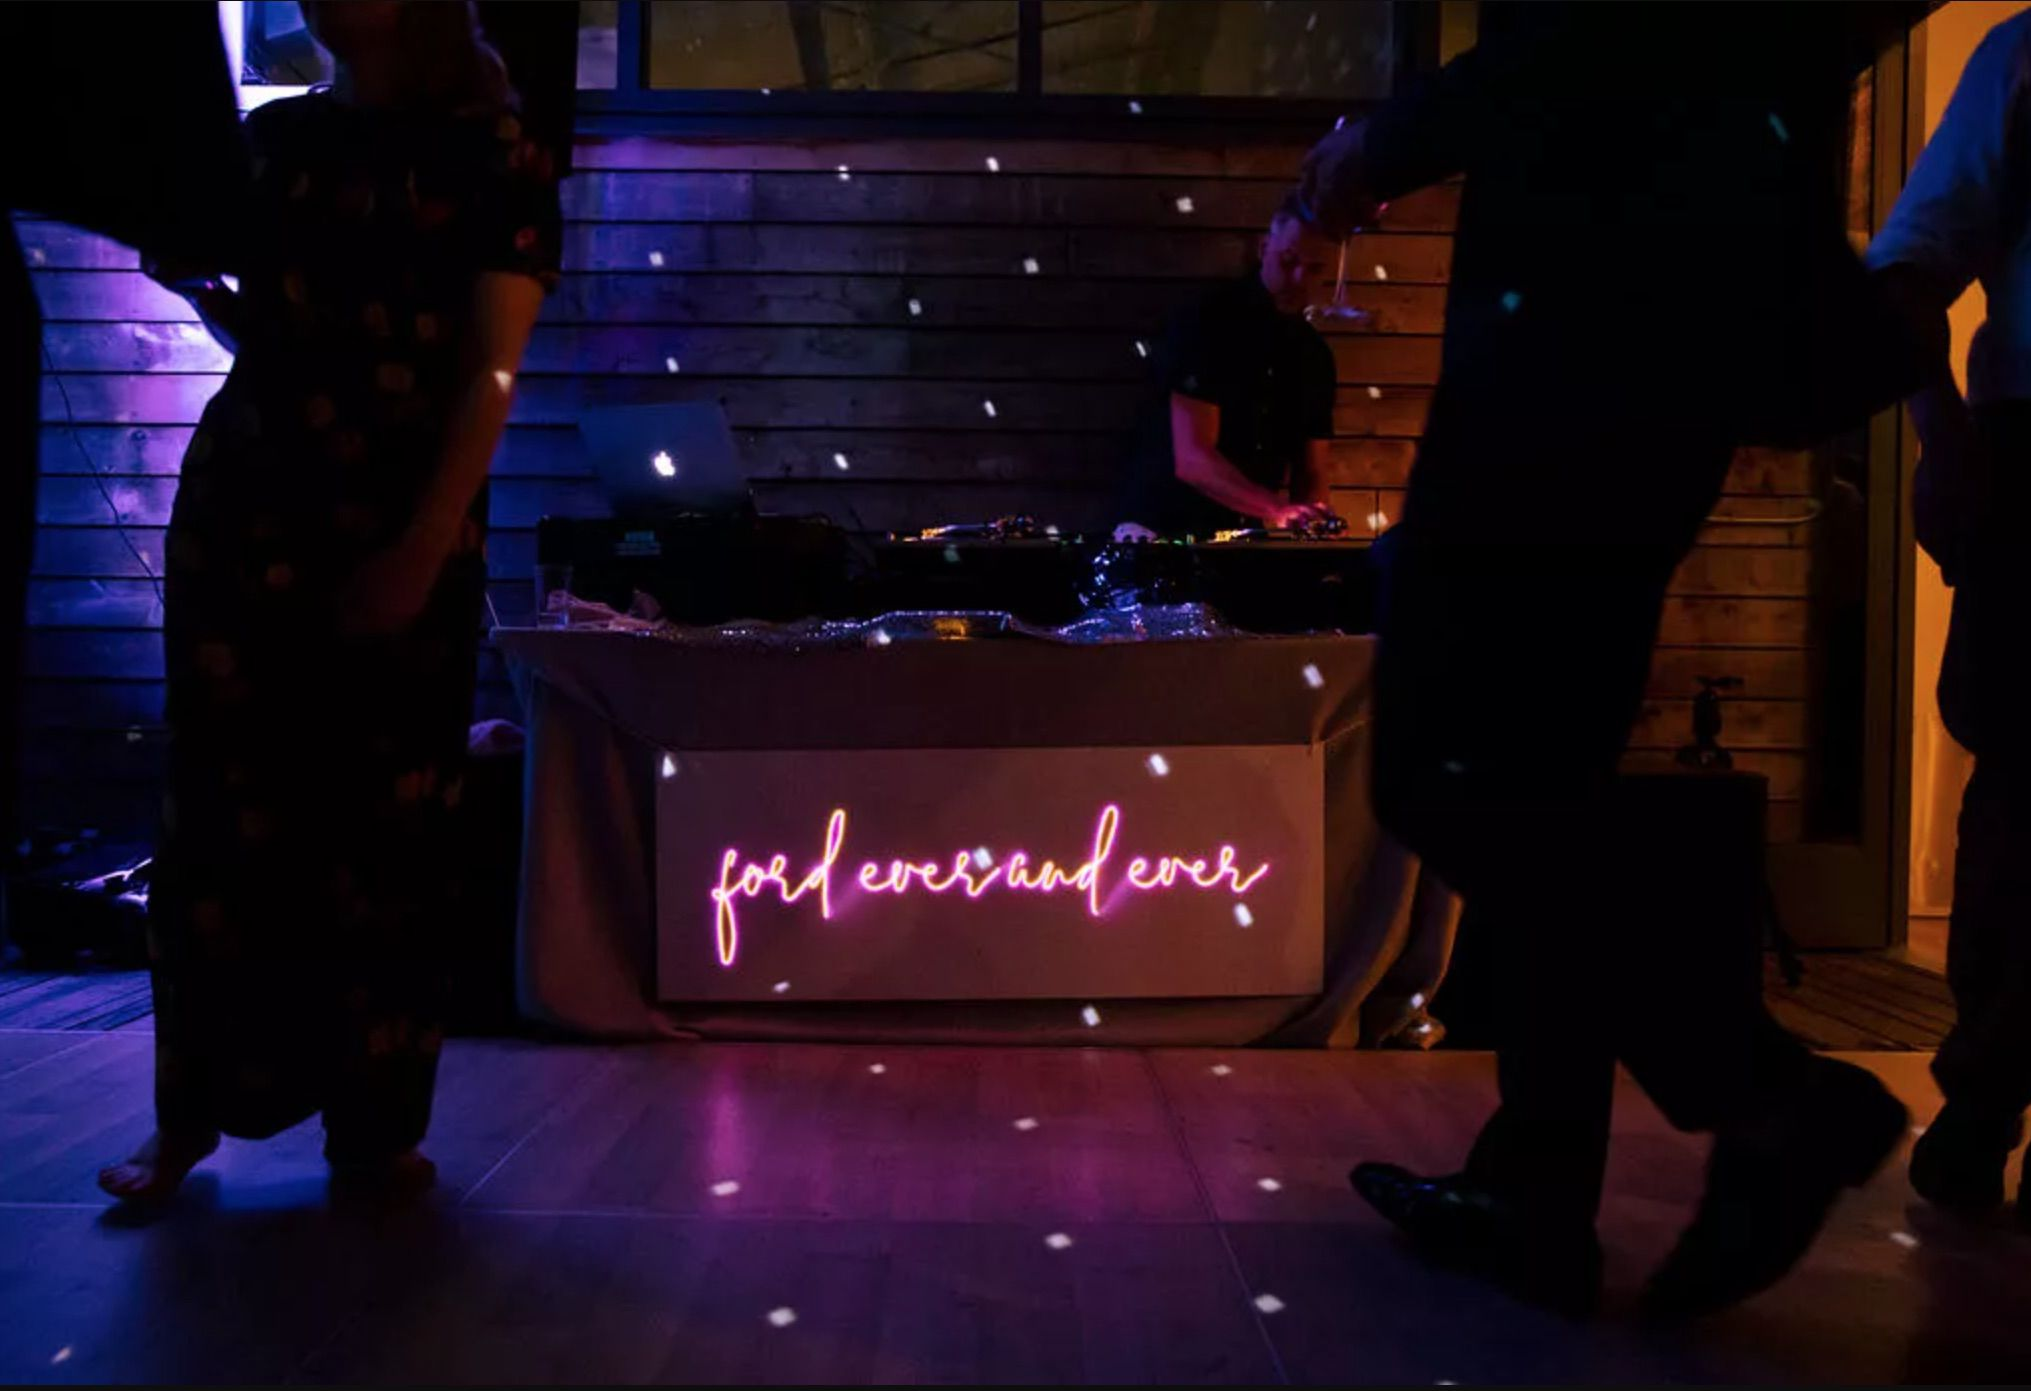 DJ booth with neon sign